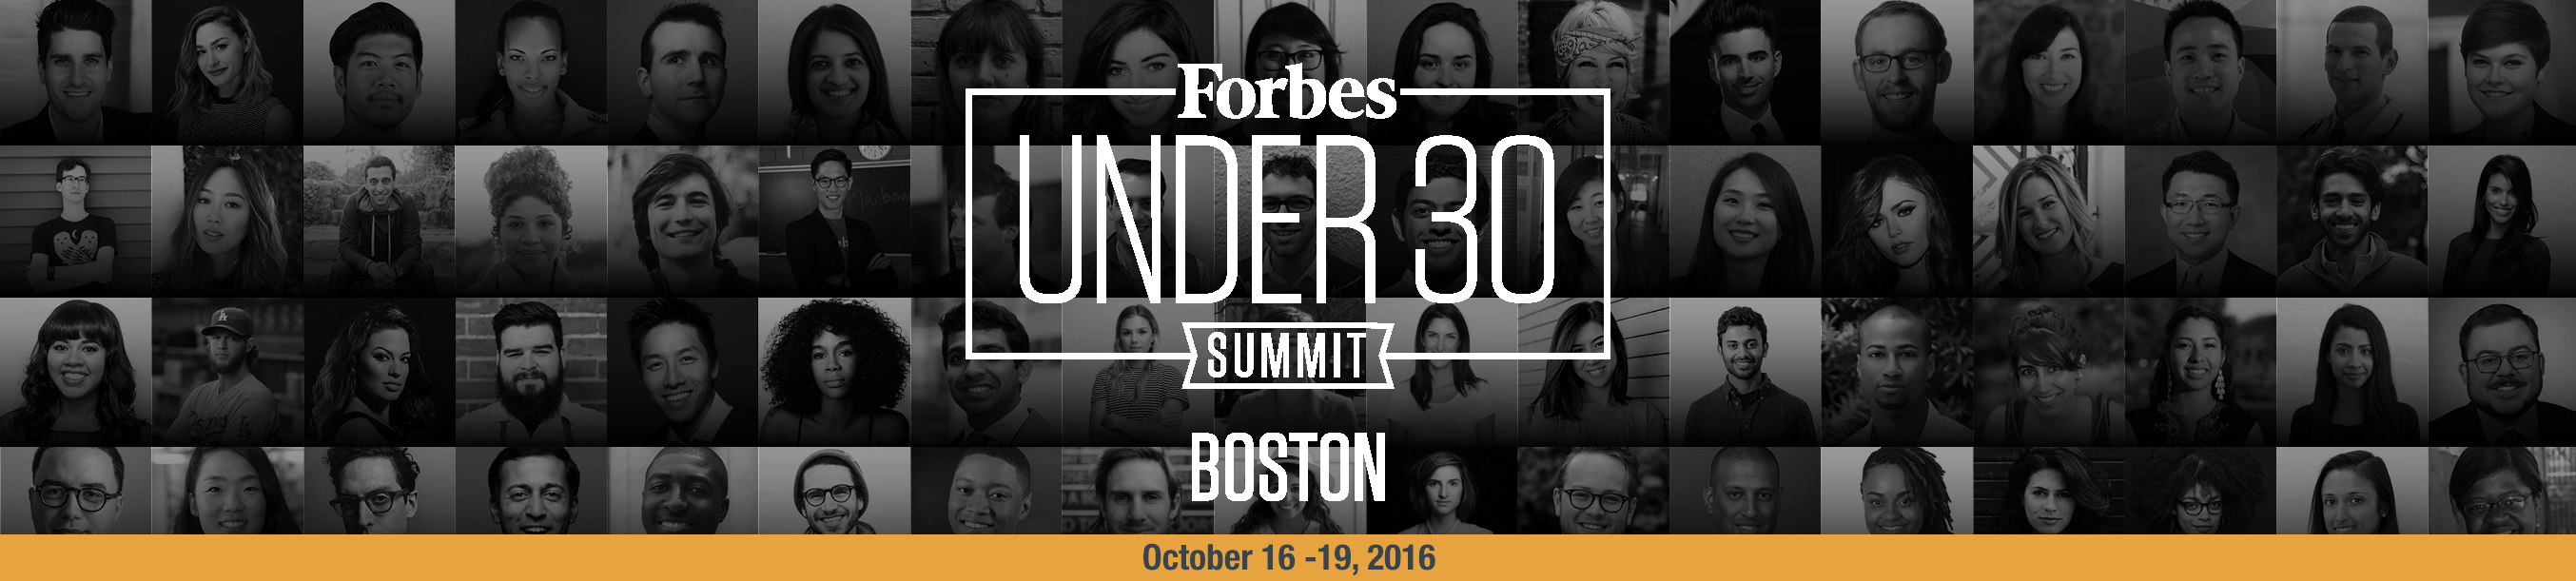 Forbes Under 30 Summit: Boston - Content Stages